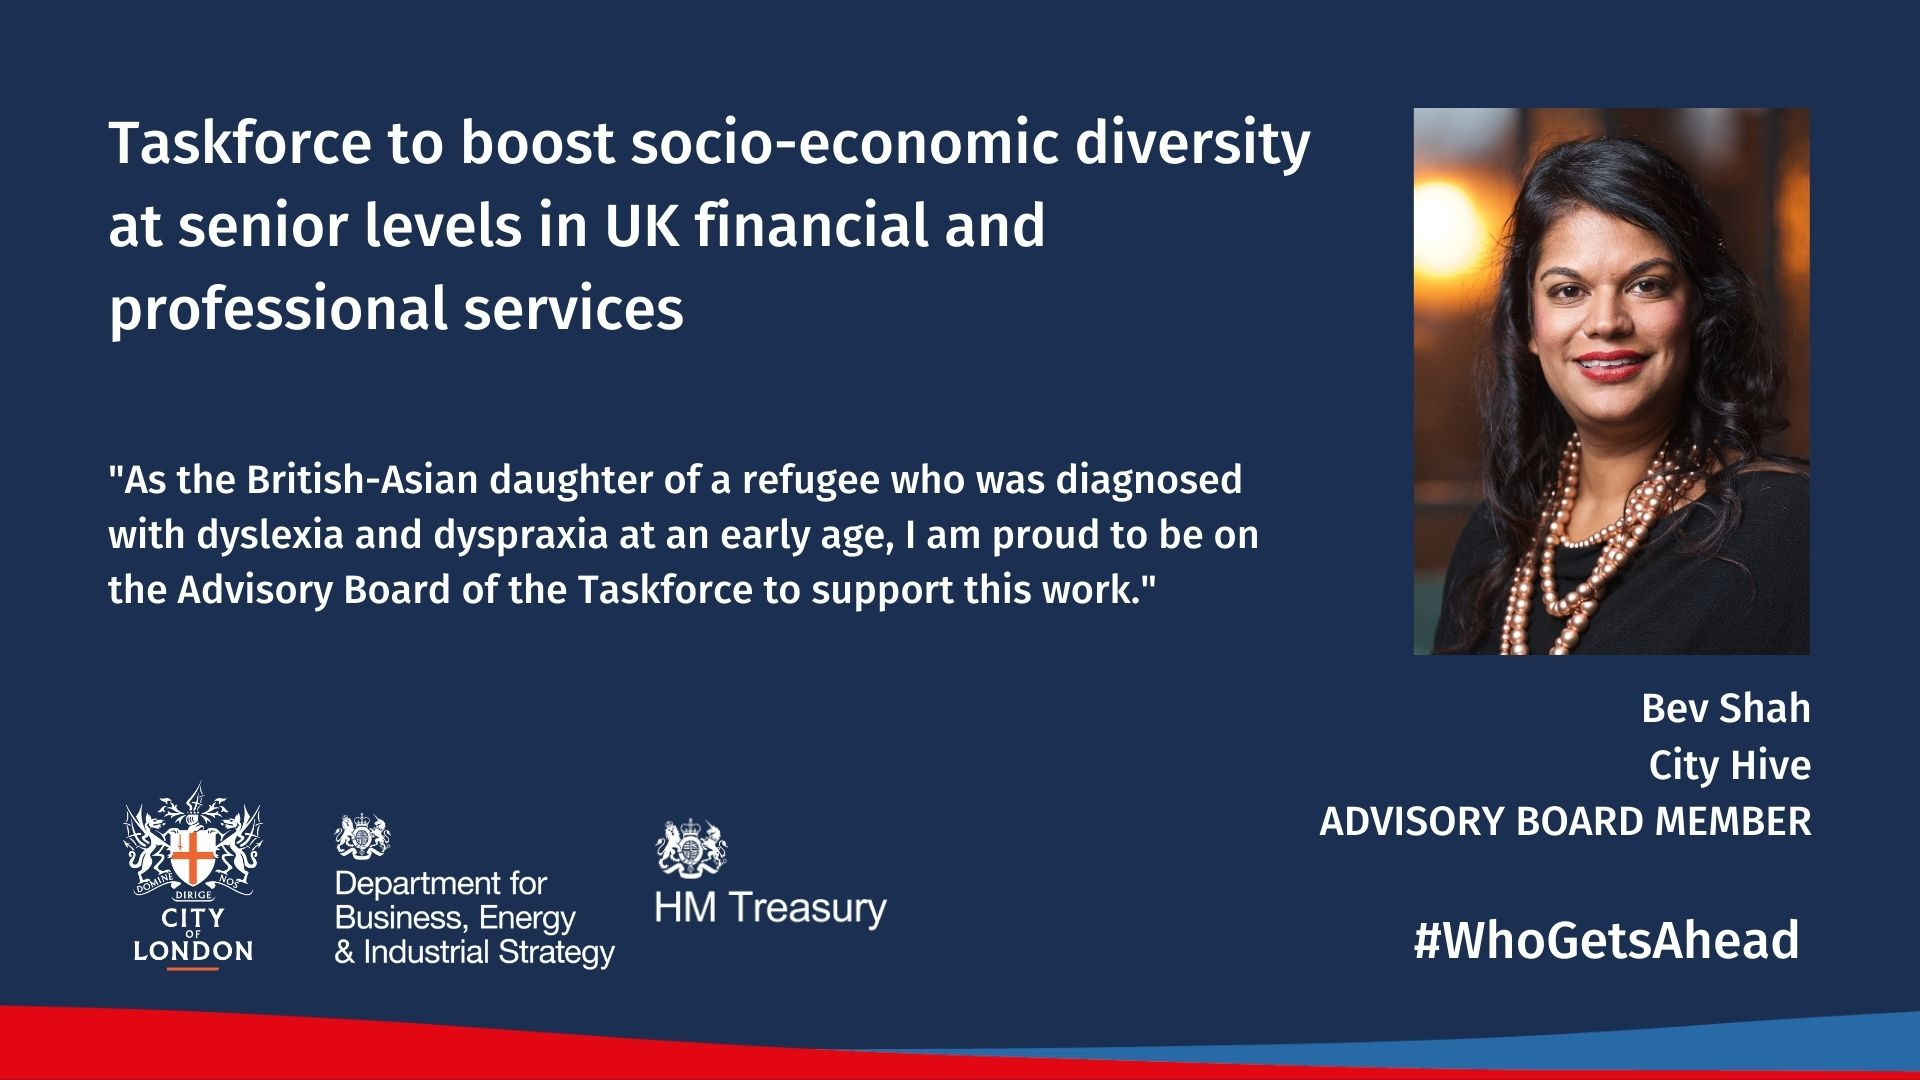 Bev Shah Joins Advisory Board For Government Back Taskforce For Socio-Economic Diversity At The Top